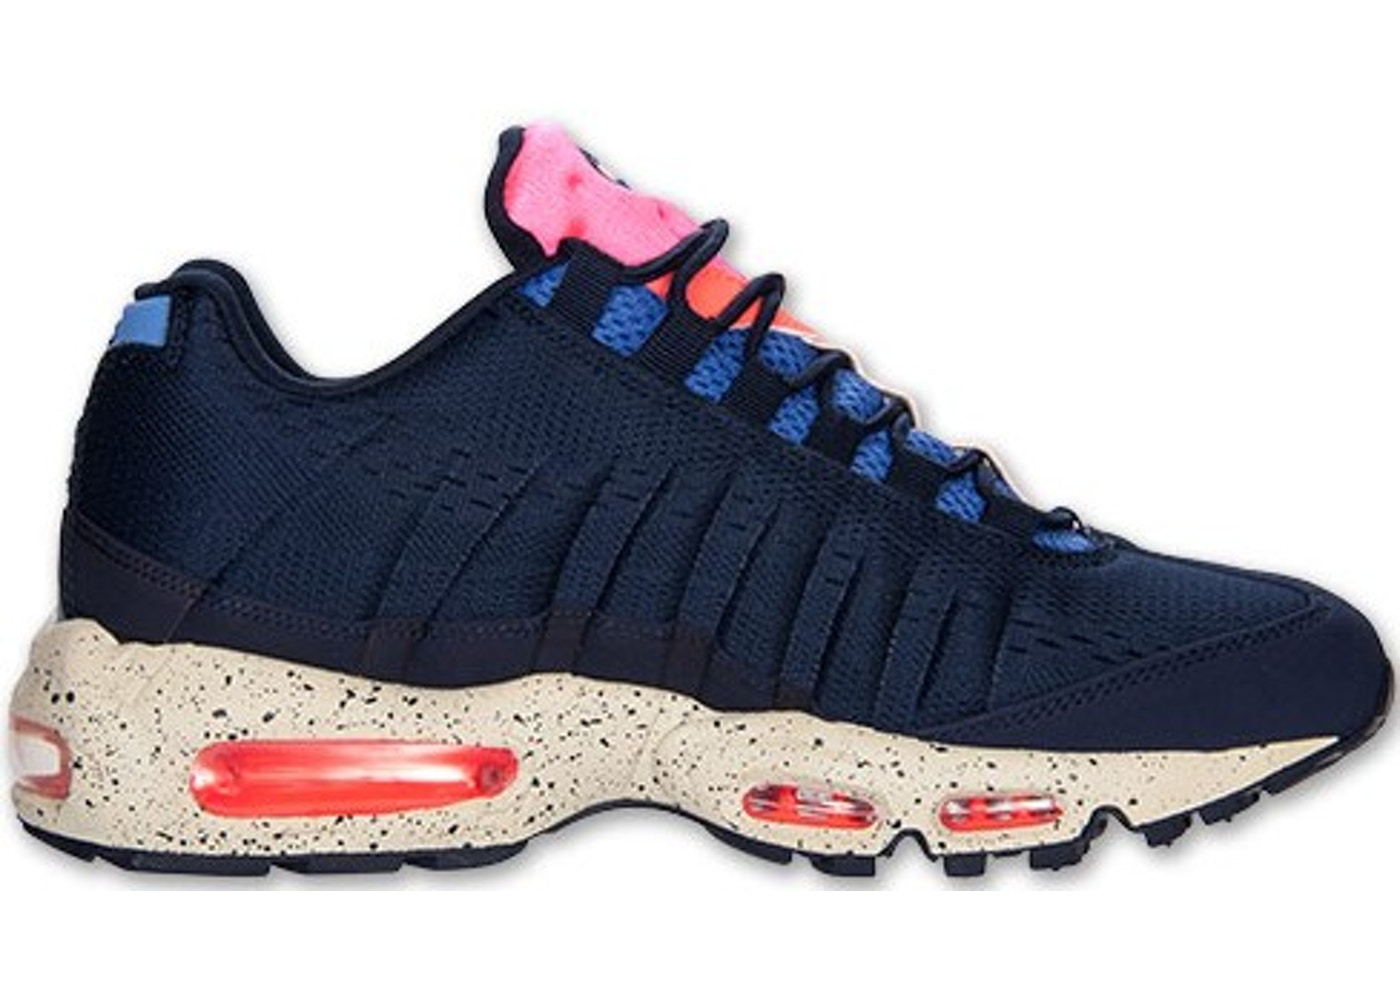 official photos d8c39 b8215 Air Max 95 Beaches of Rio - 554971-164